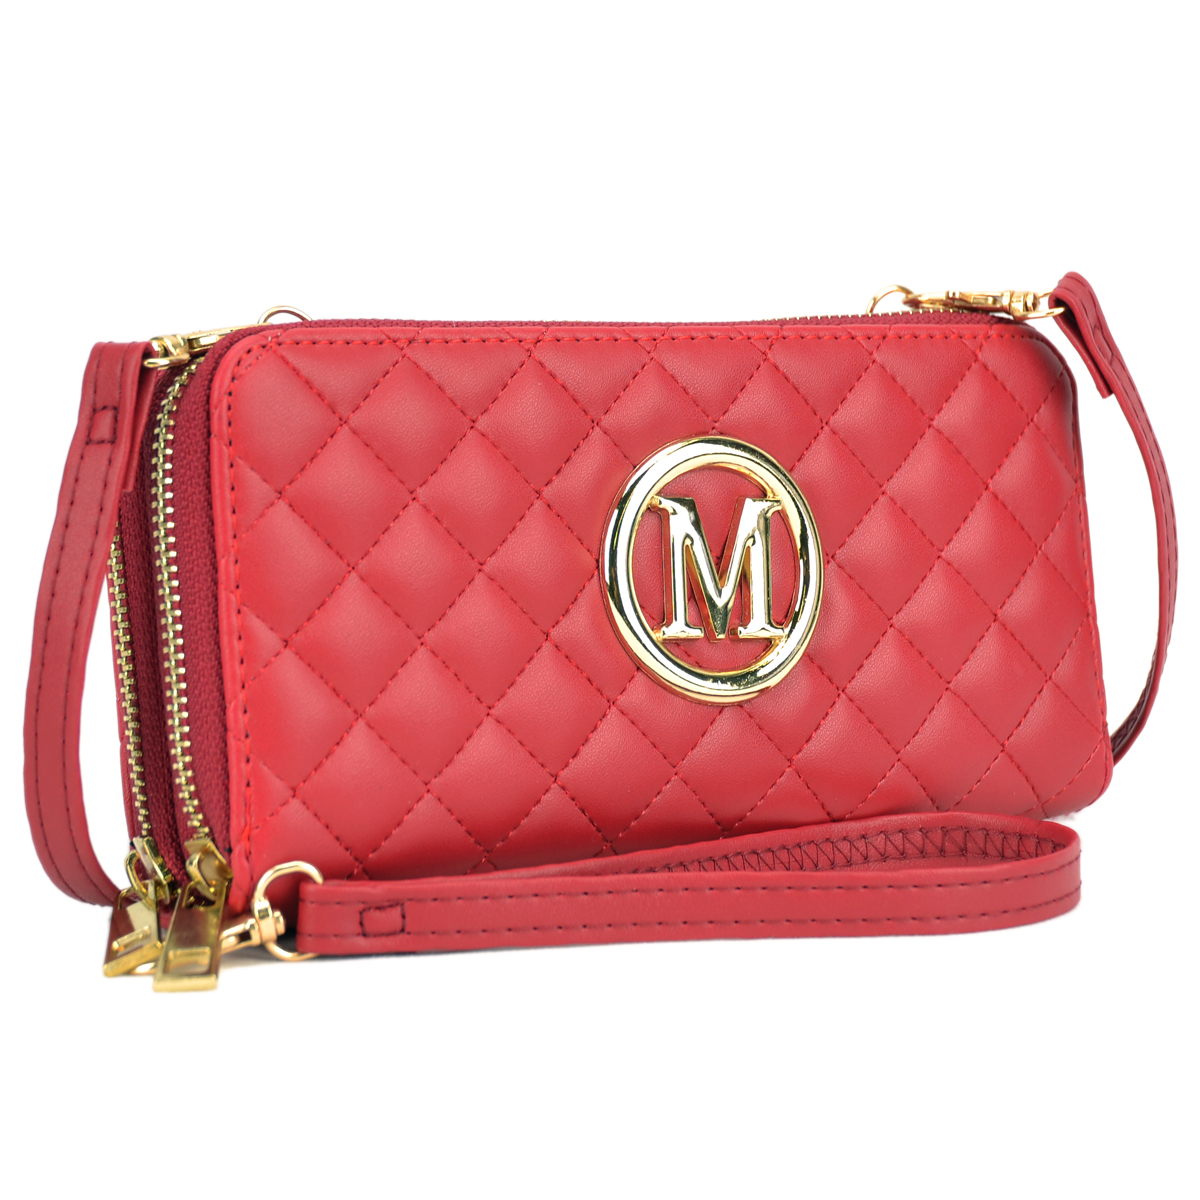 Soft Quilted Emblem Double layer Zip Around Wallet with Shoulder and Wristlet Strap